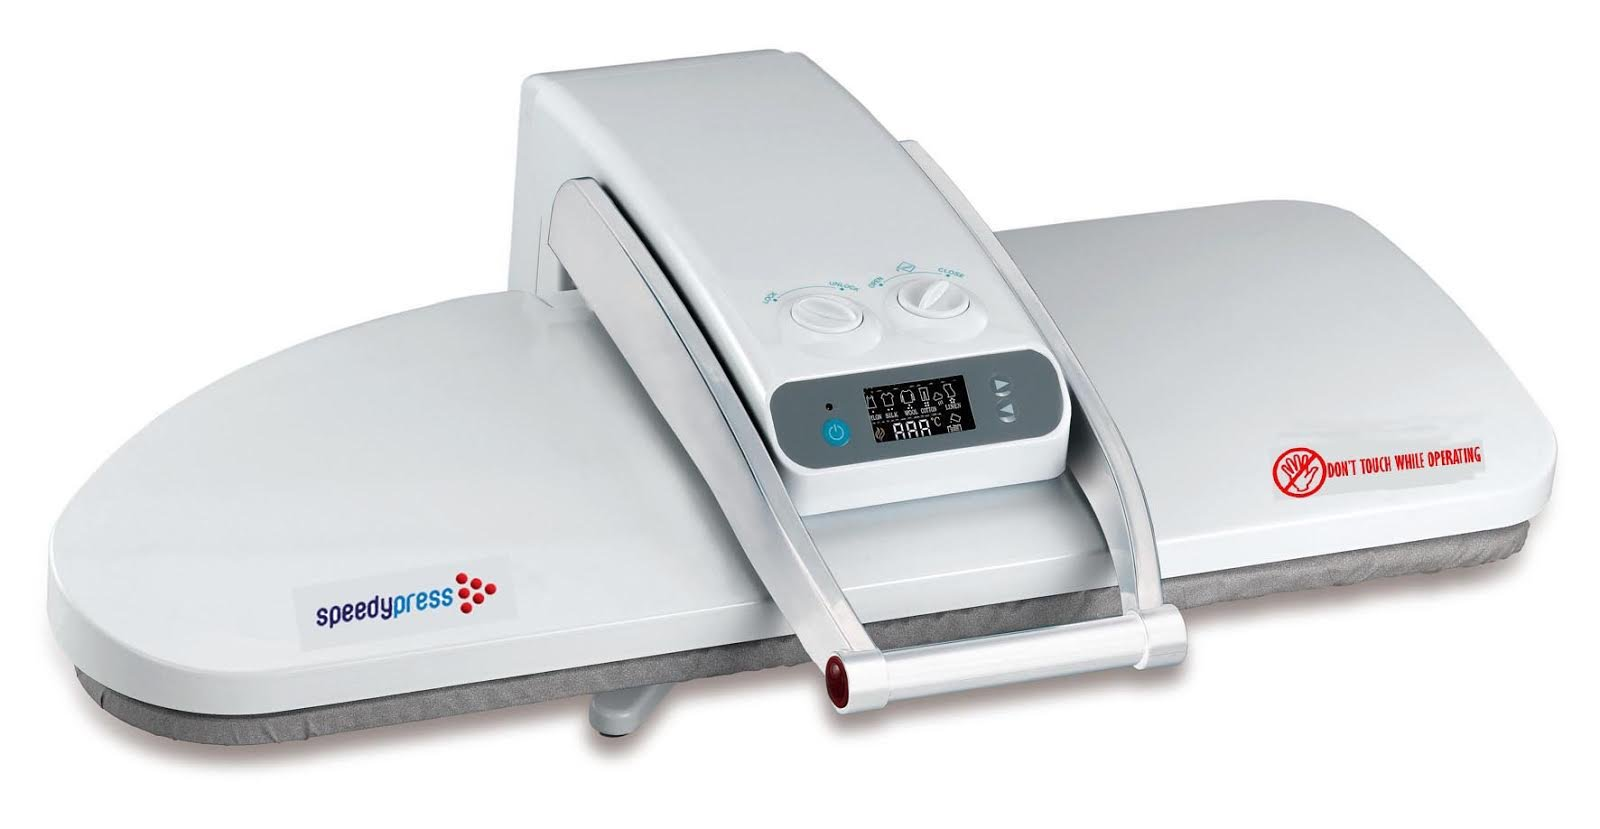 Ironing Press for Dry or Steam Pressing, 1800 Watts! 38 Powerful Jets of Steam, 100lbs of Pressure, Includes Extra Cover+Foam ($35 Value)! (Extra Large)